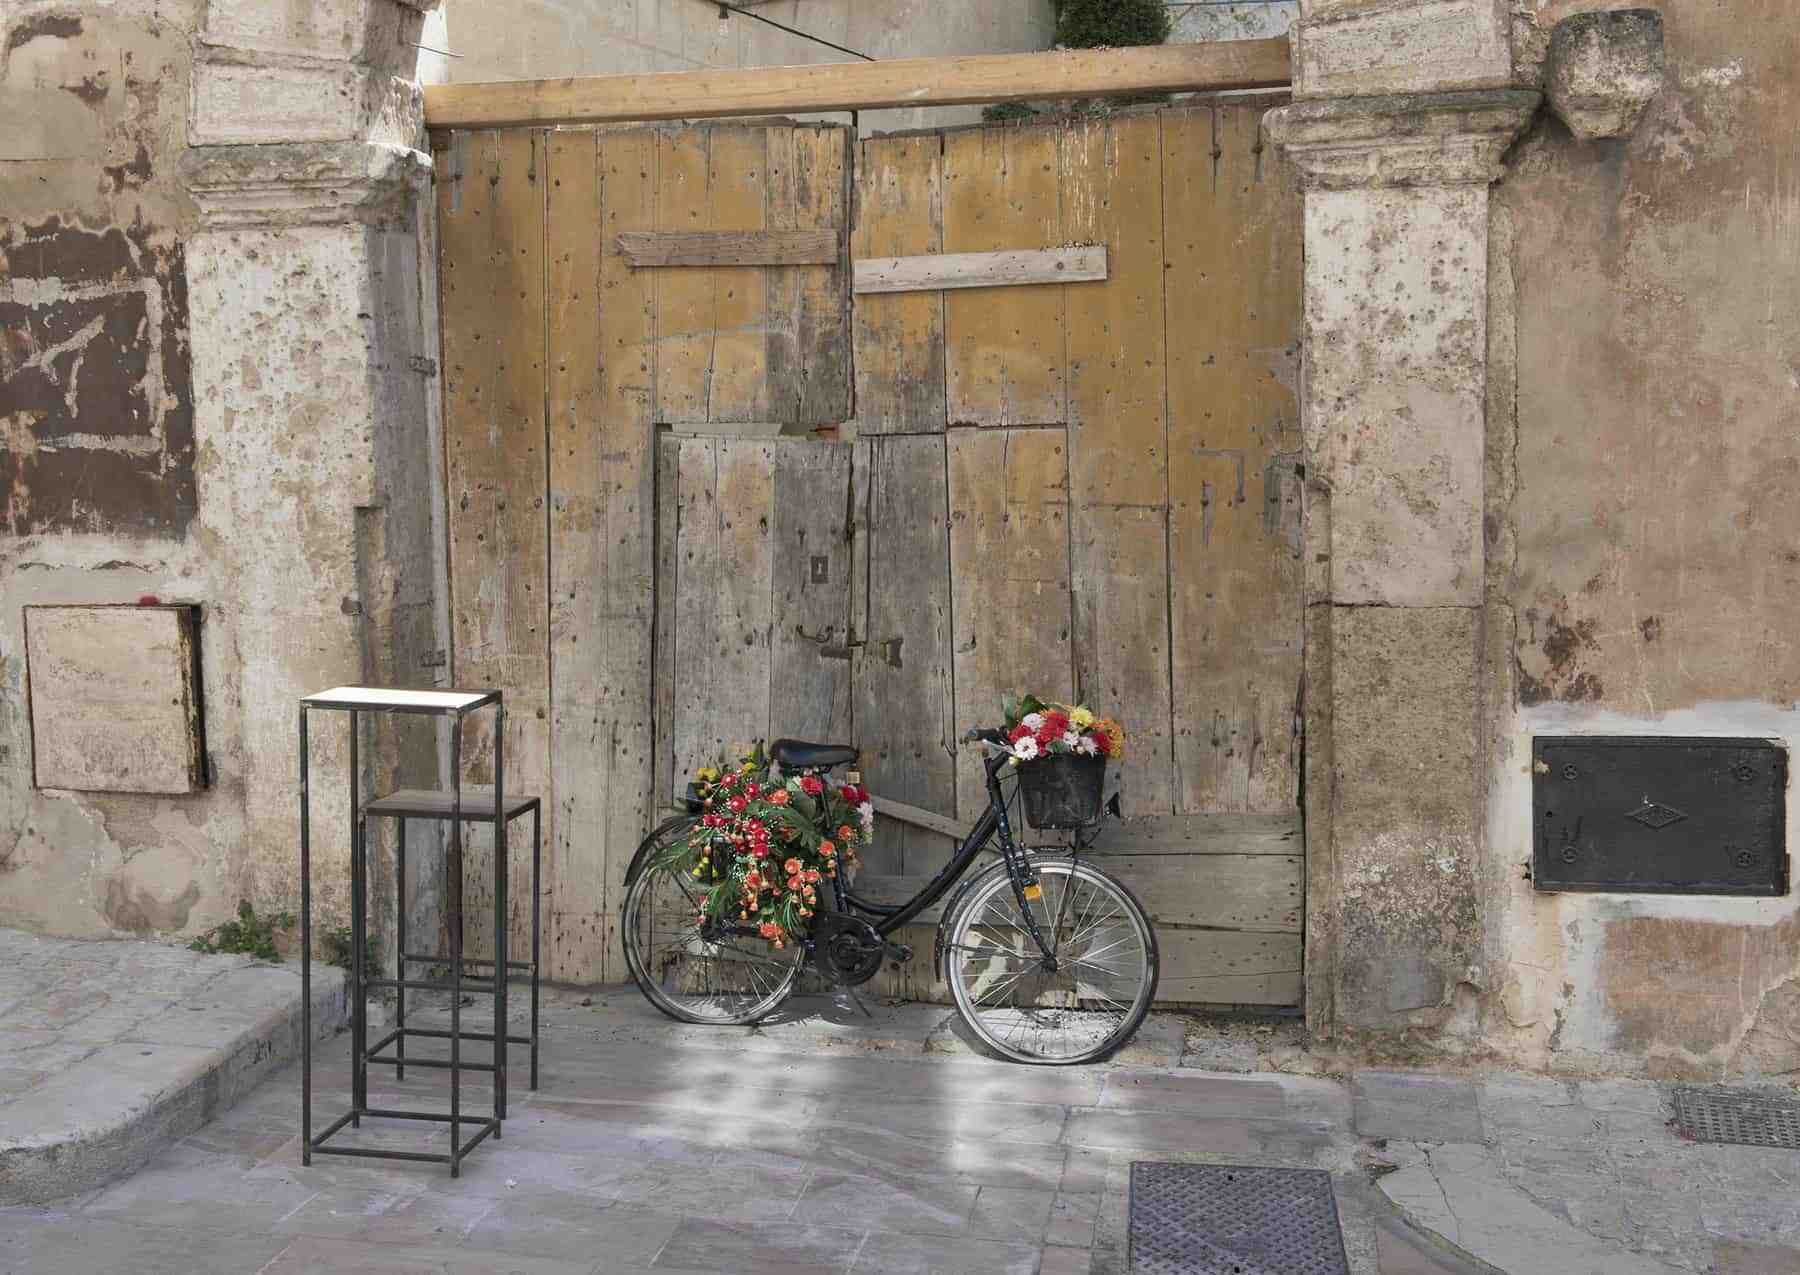 matera charming bike flower decorationmatera charming bike flower decoration